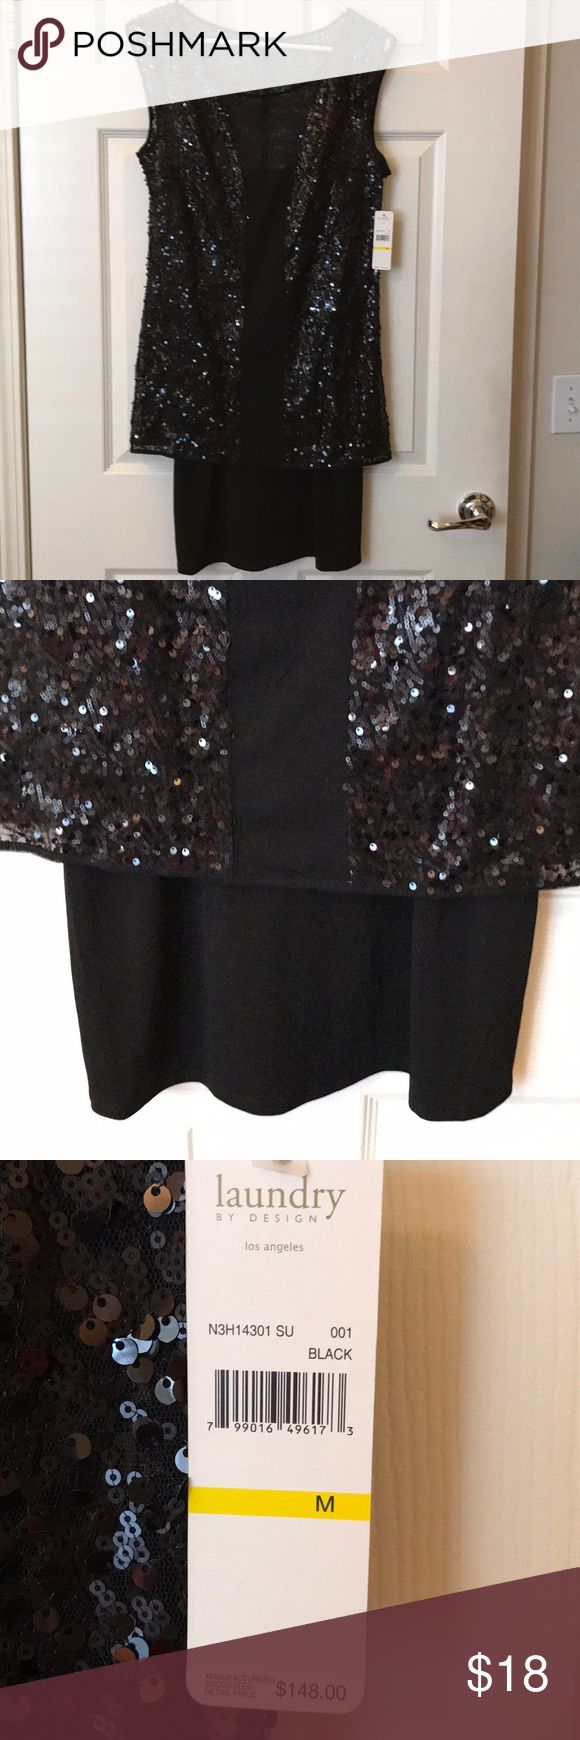 Laundry dress Brand new with tags size medium sequin/sheer gorgeous dress. Laundry by Design Dresses